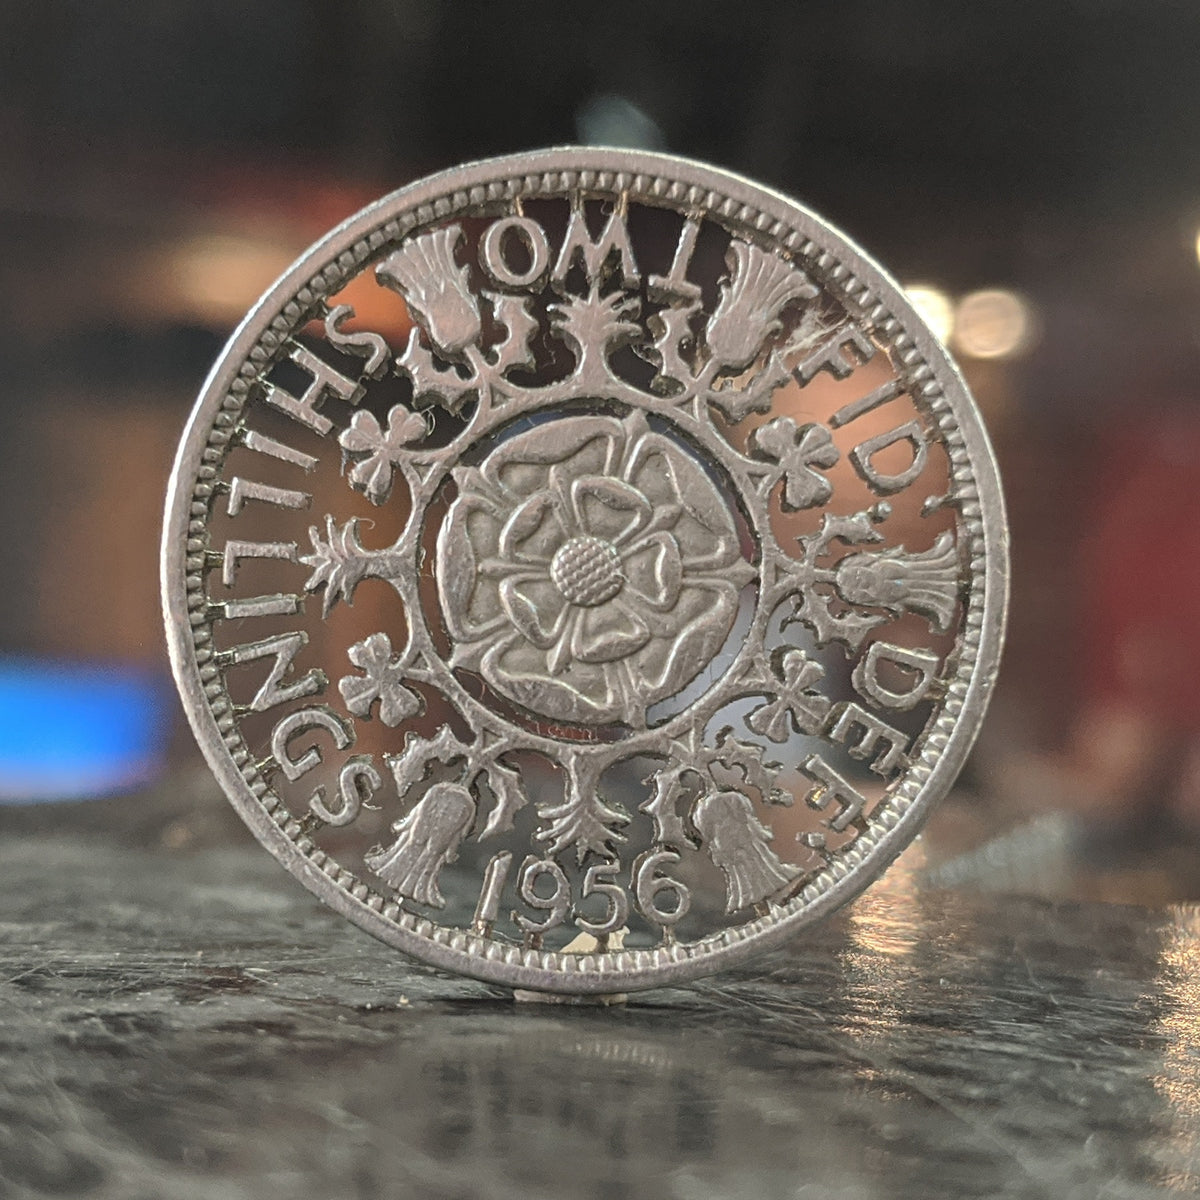 1956 Two Shilling Cut Coin